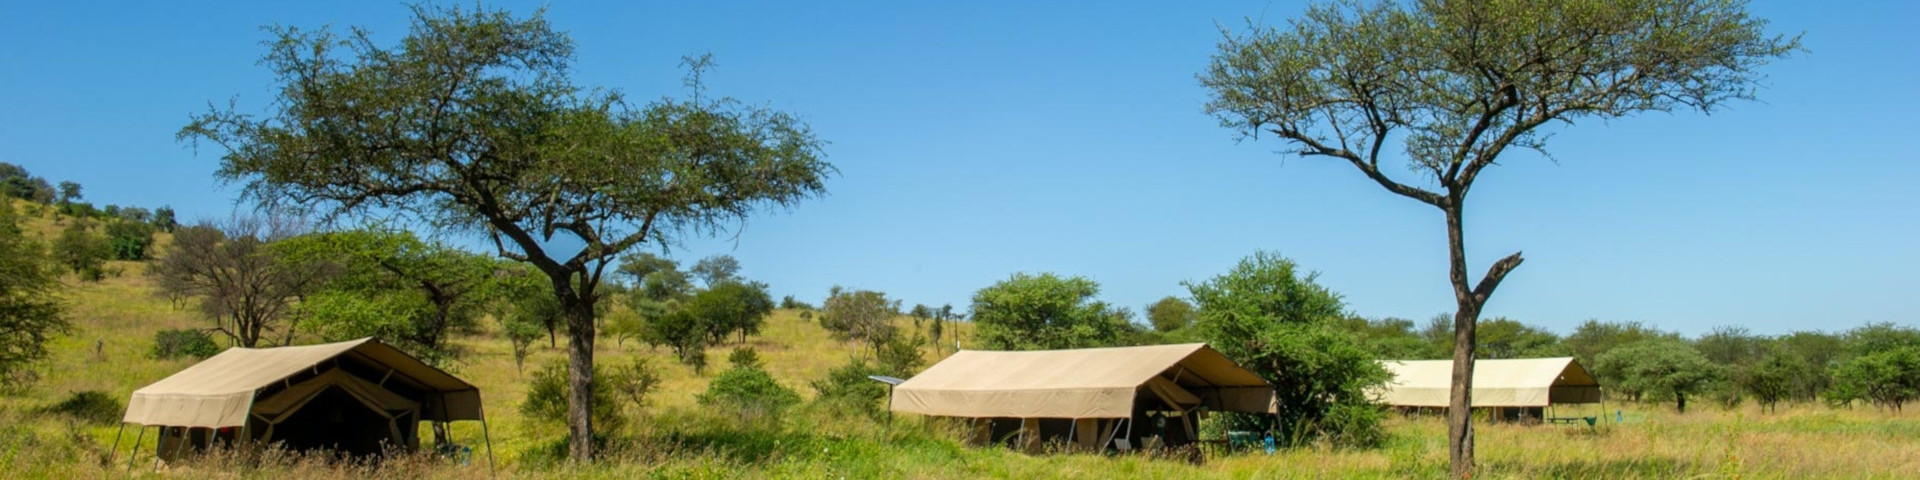 Kati Kati Camp - Central Serengeti - Tanzania